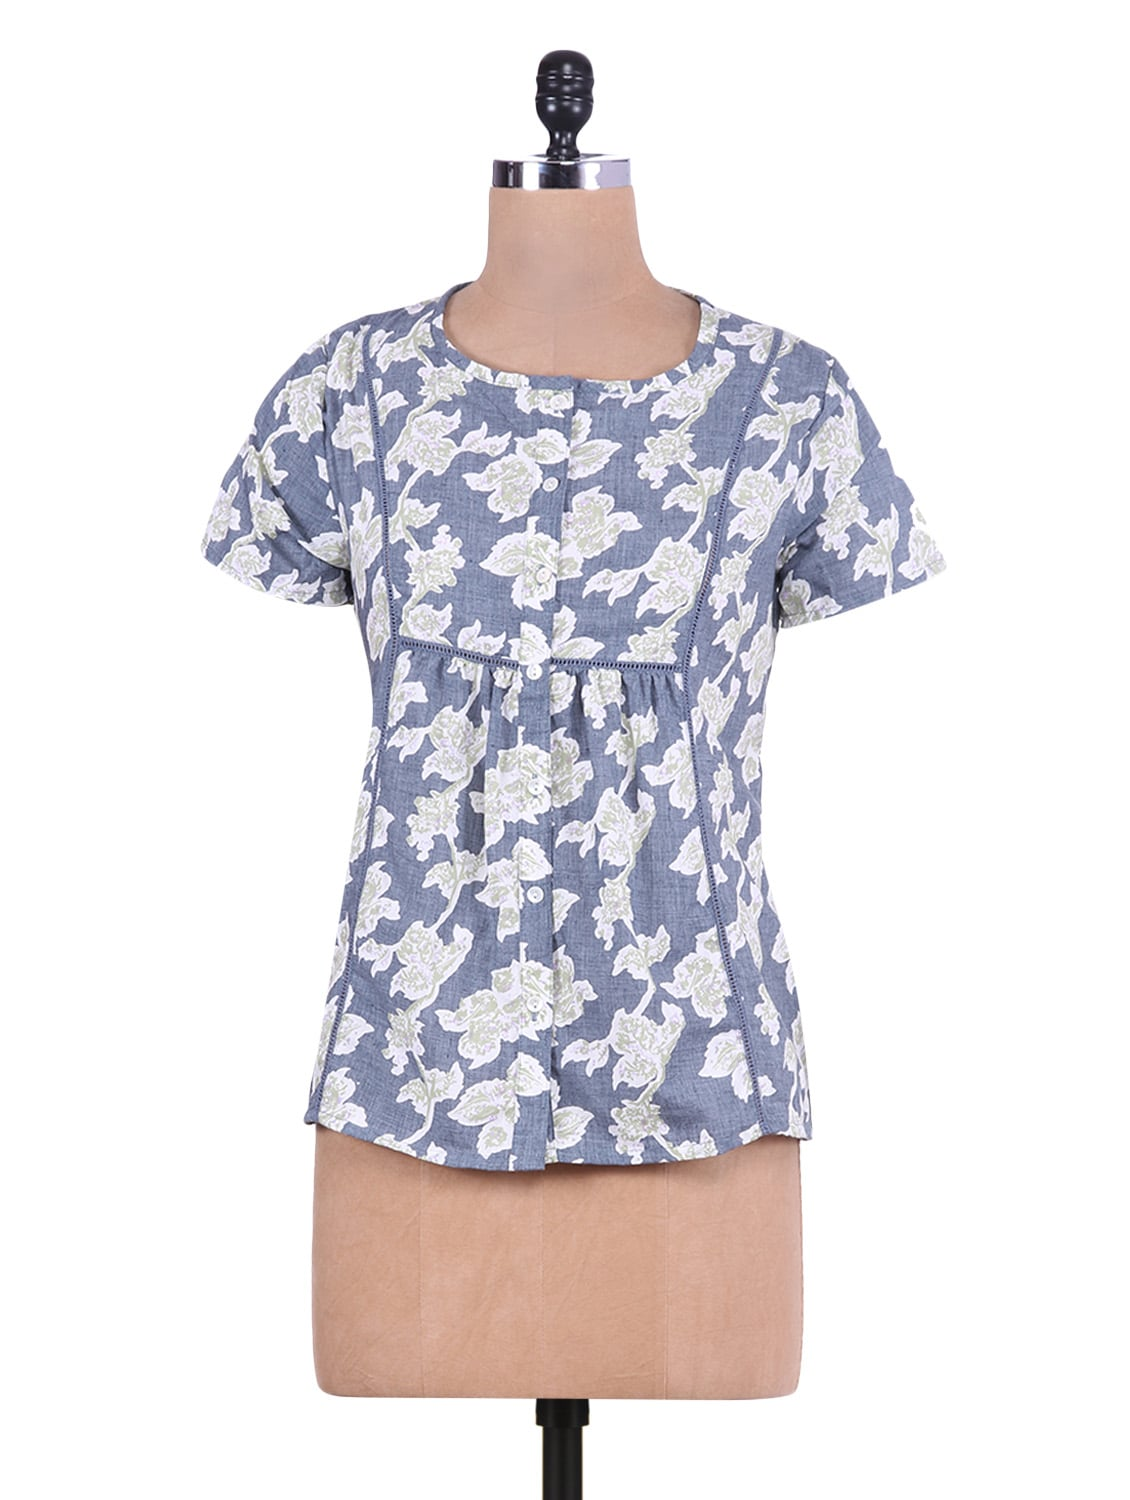 Indigo And Grey Floral Printed Cotton Top - By